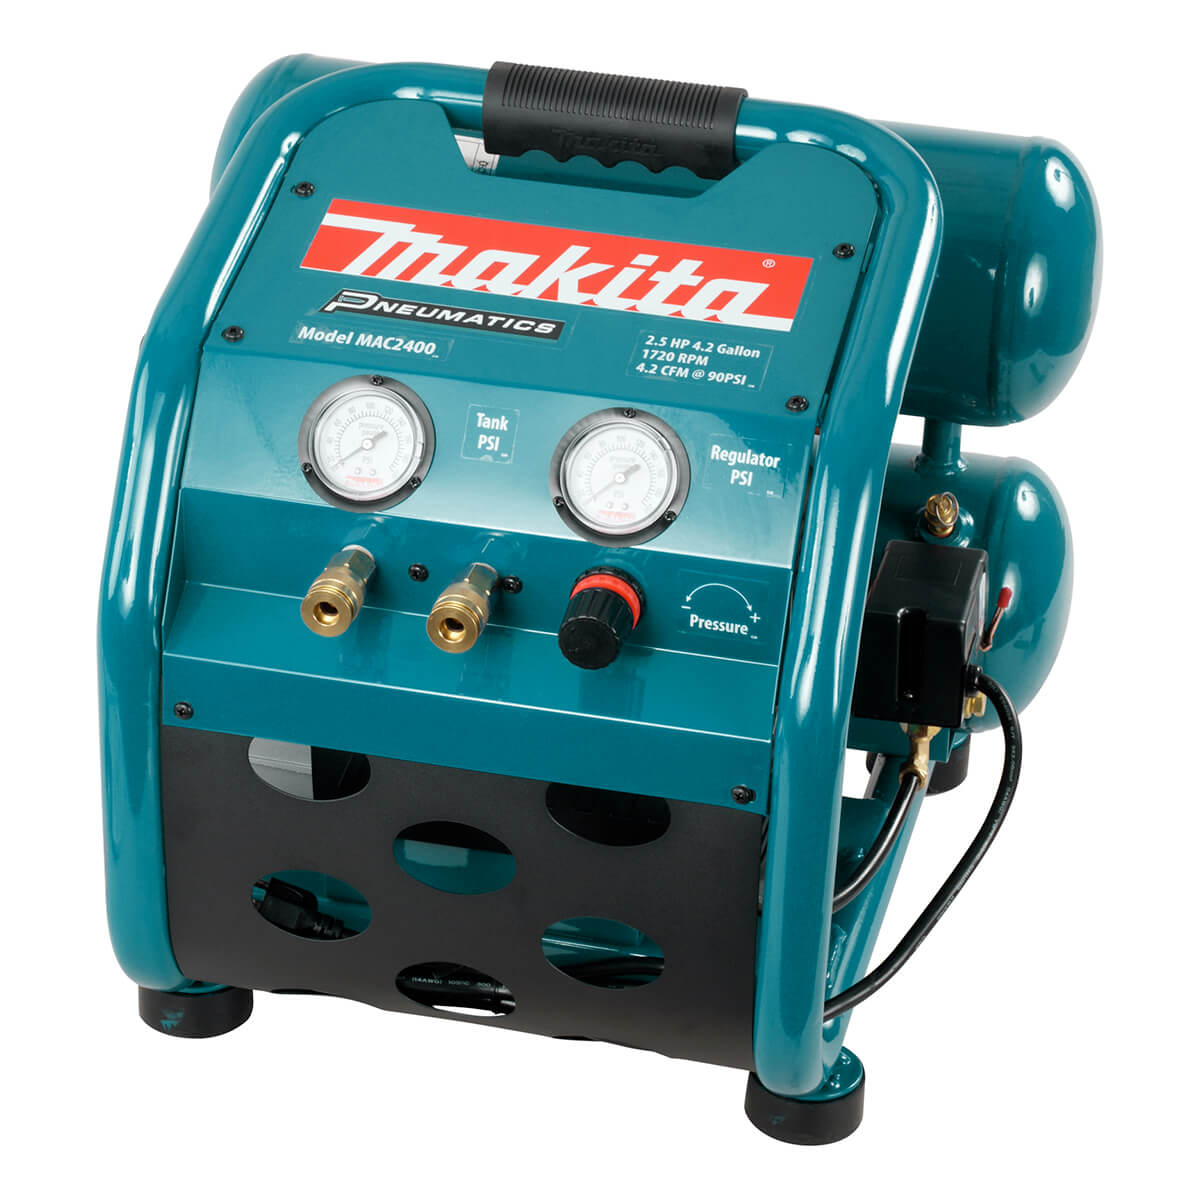 Makita MAC2400 Big Bore Air Compressor - 2.5 hp